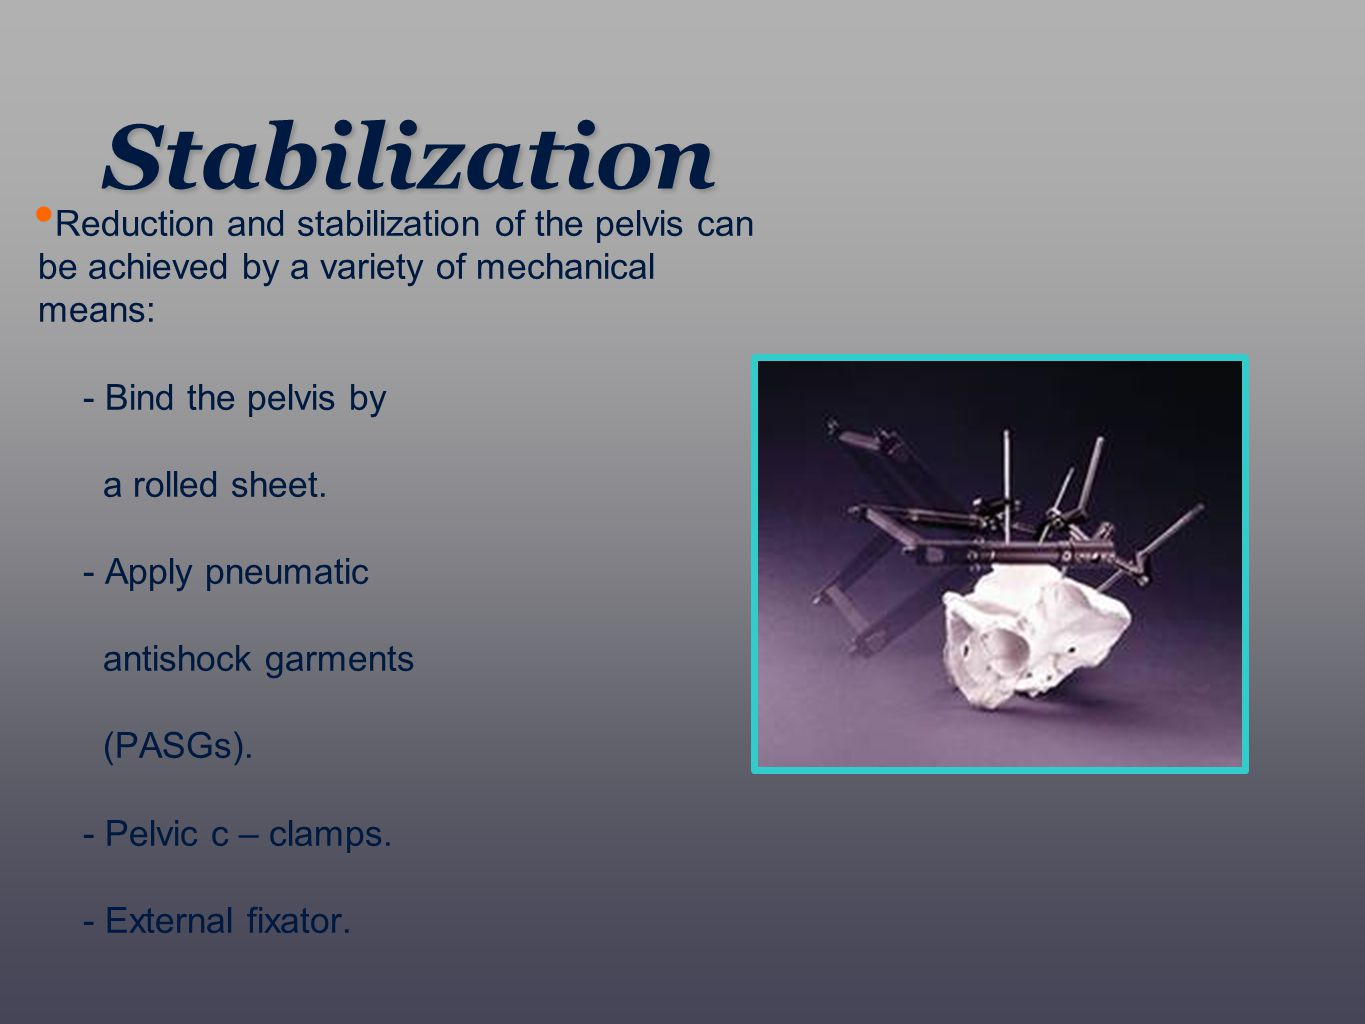 Reduction and stabilization of the pelvis can be achieved by a variety of mechanical means: - Bind the pelvis by a rolled sheet. - Apply pneumatic ant